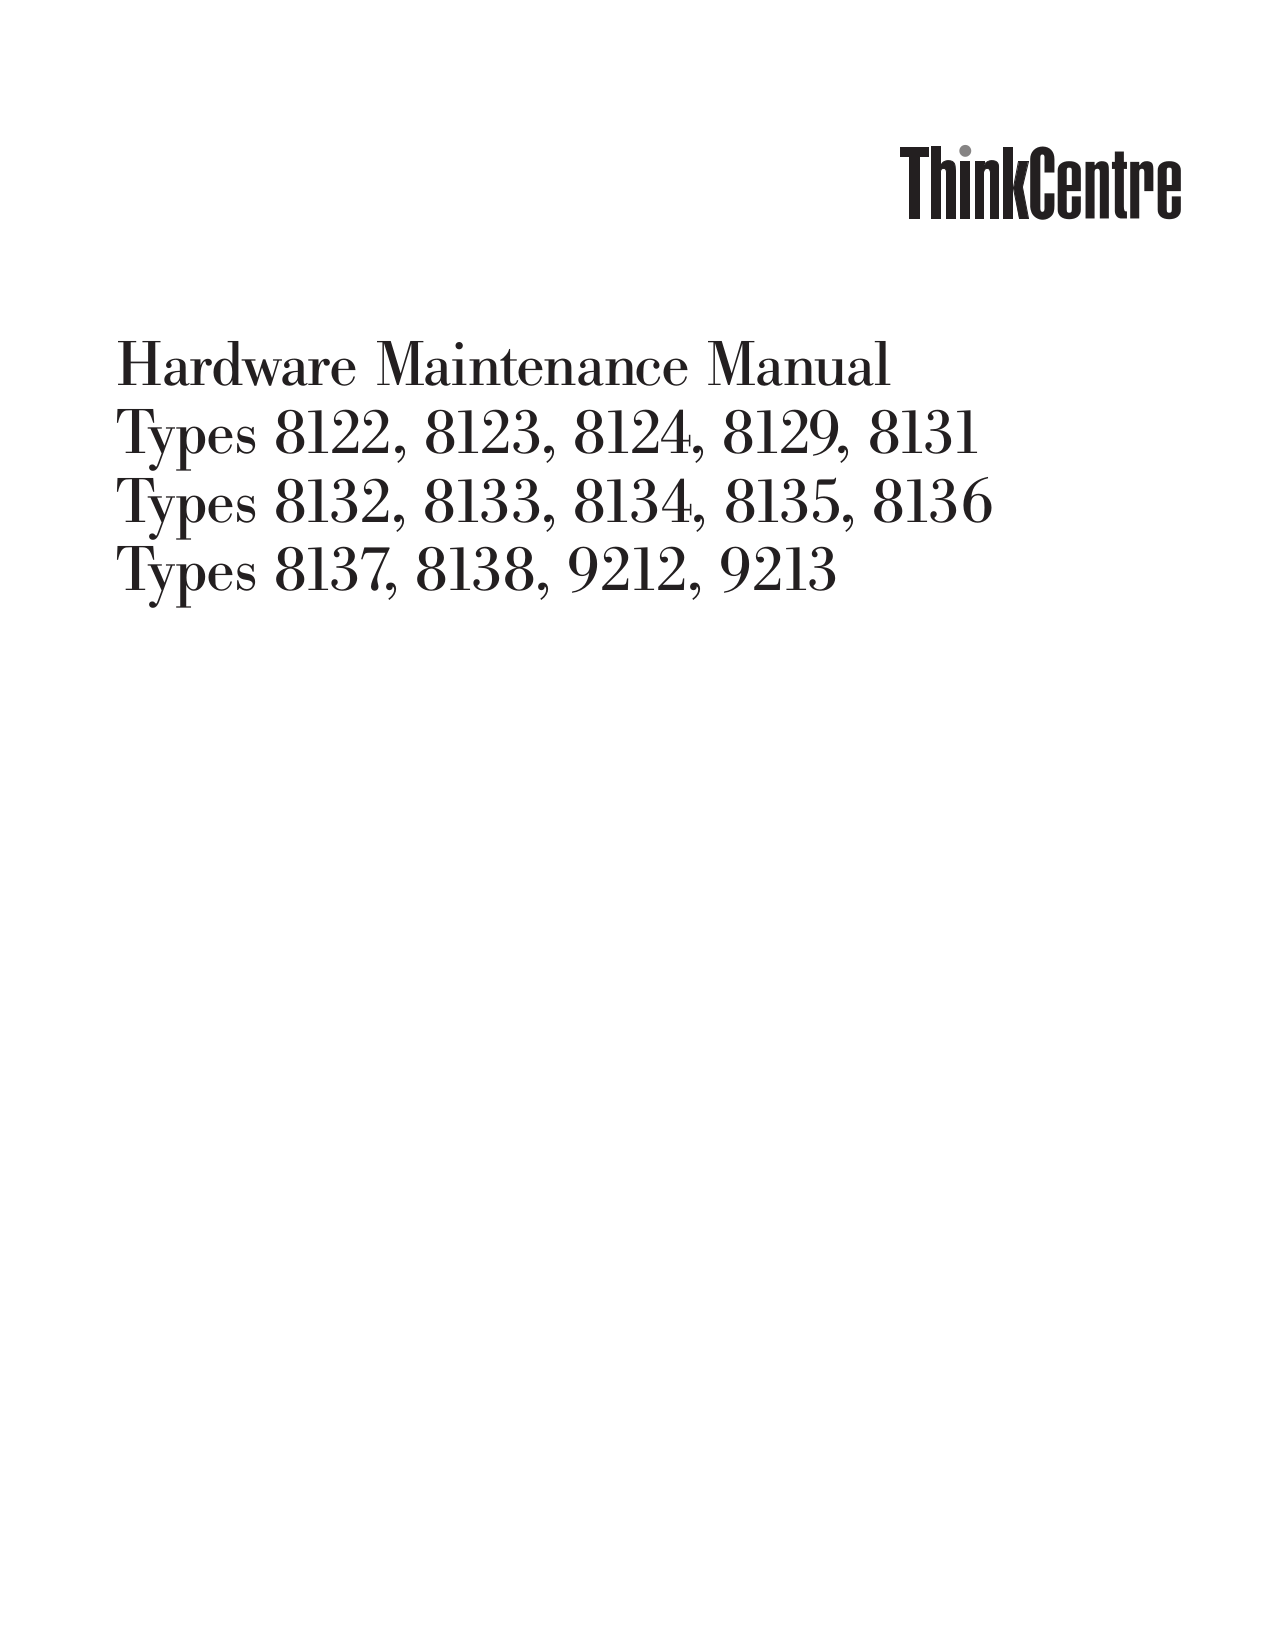 pdf for Lenovo Desktop ThinkCentre A51 8135 manual